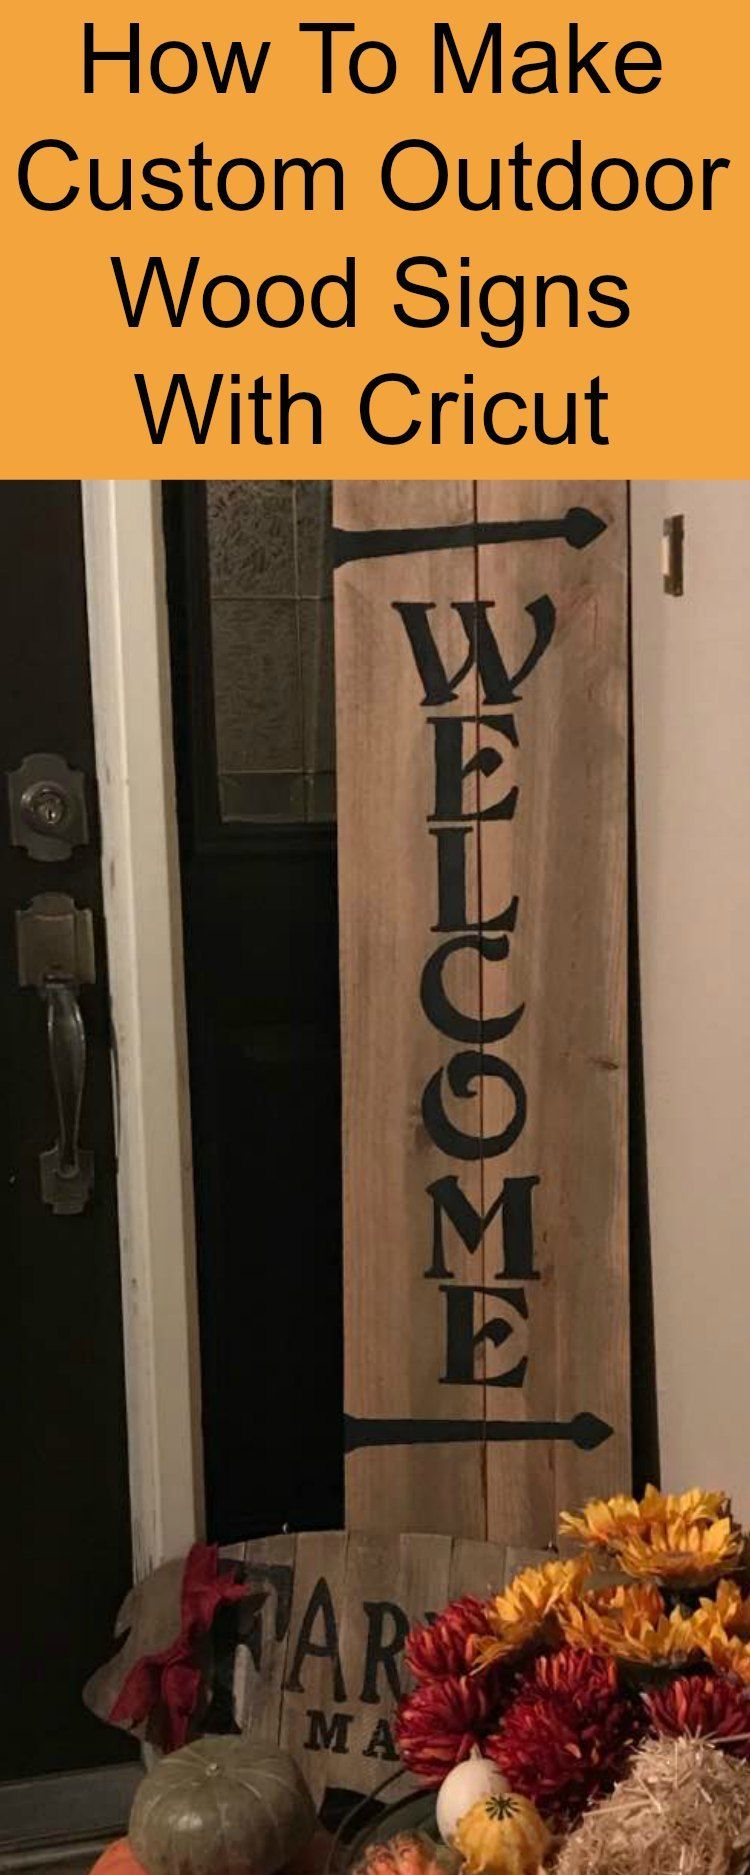 How To Make Custom Outdoor Wood Signs